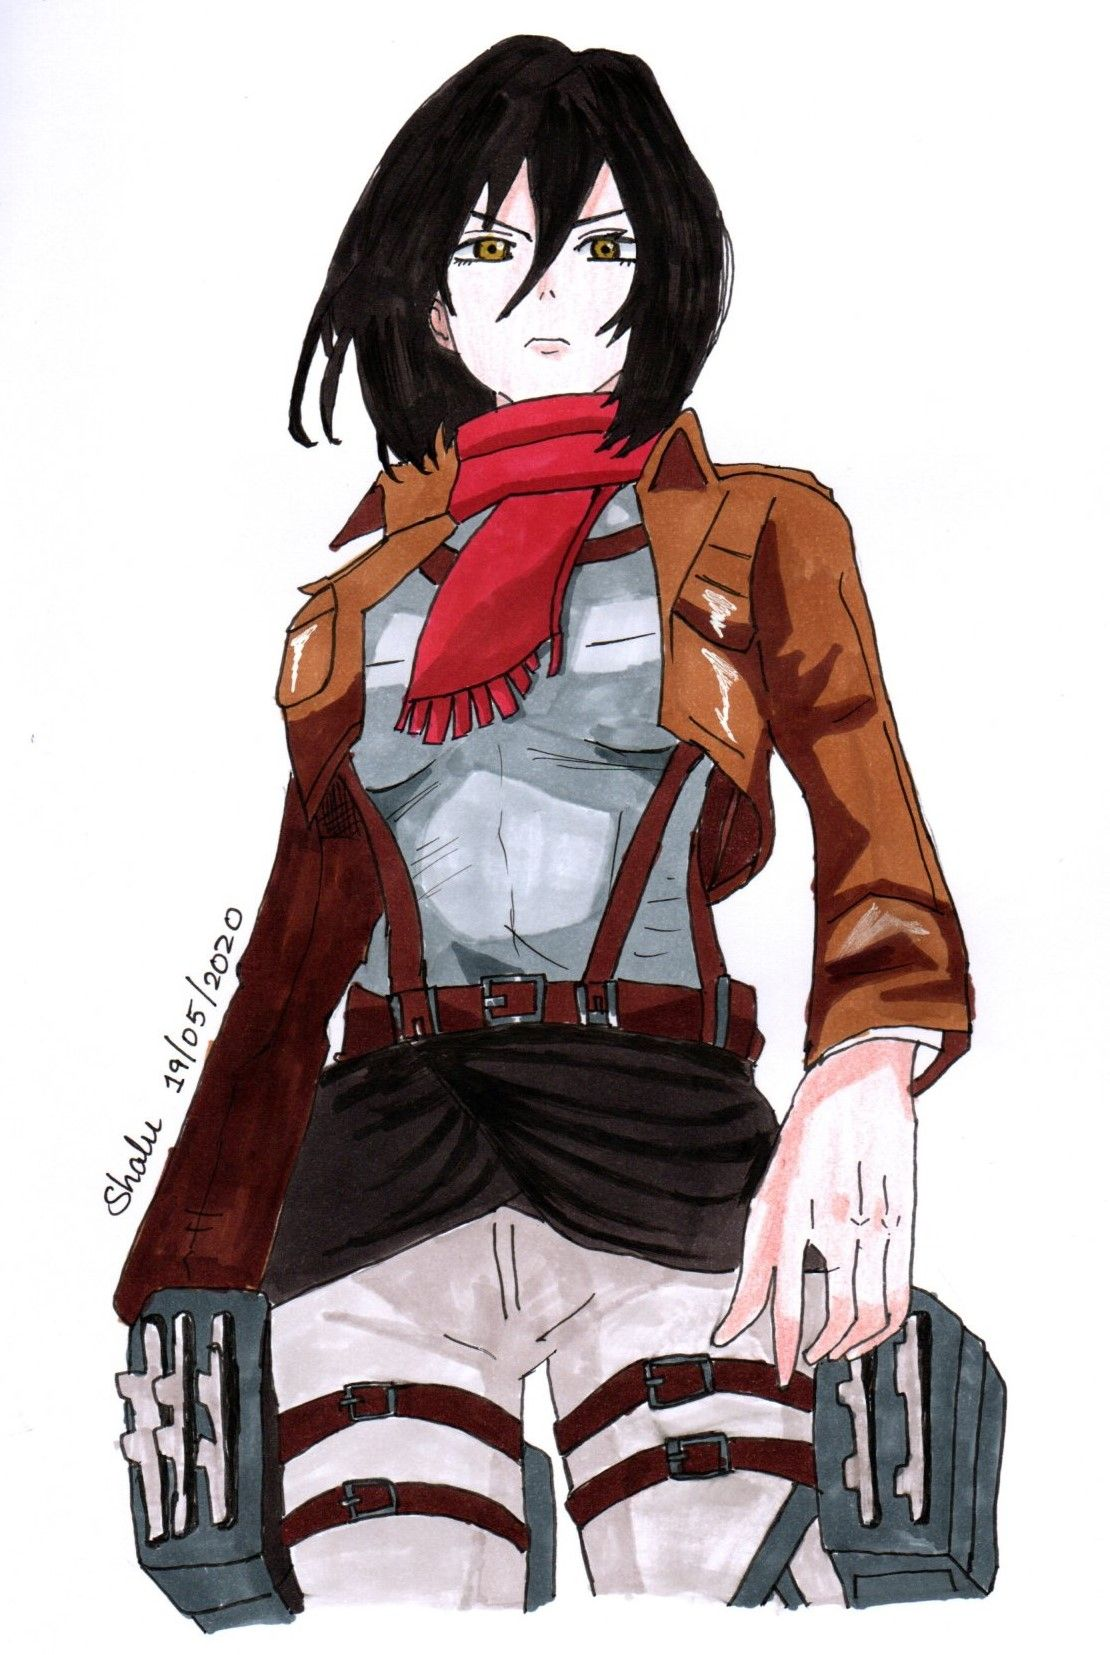 Mikasa Ackerman in 2020 Anime, Drawings, Art